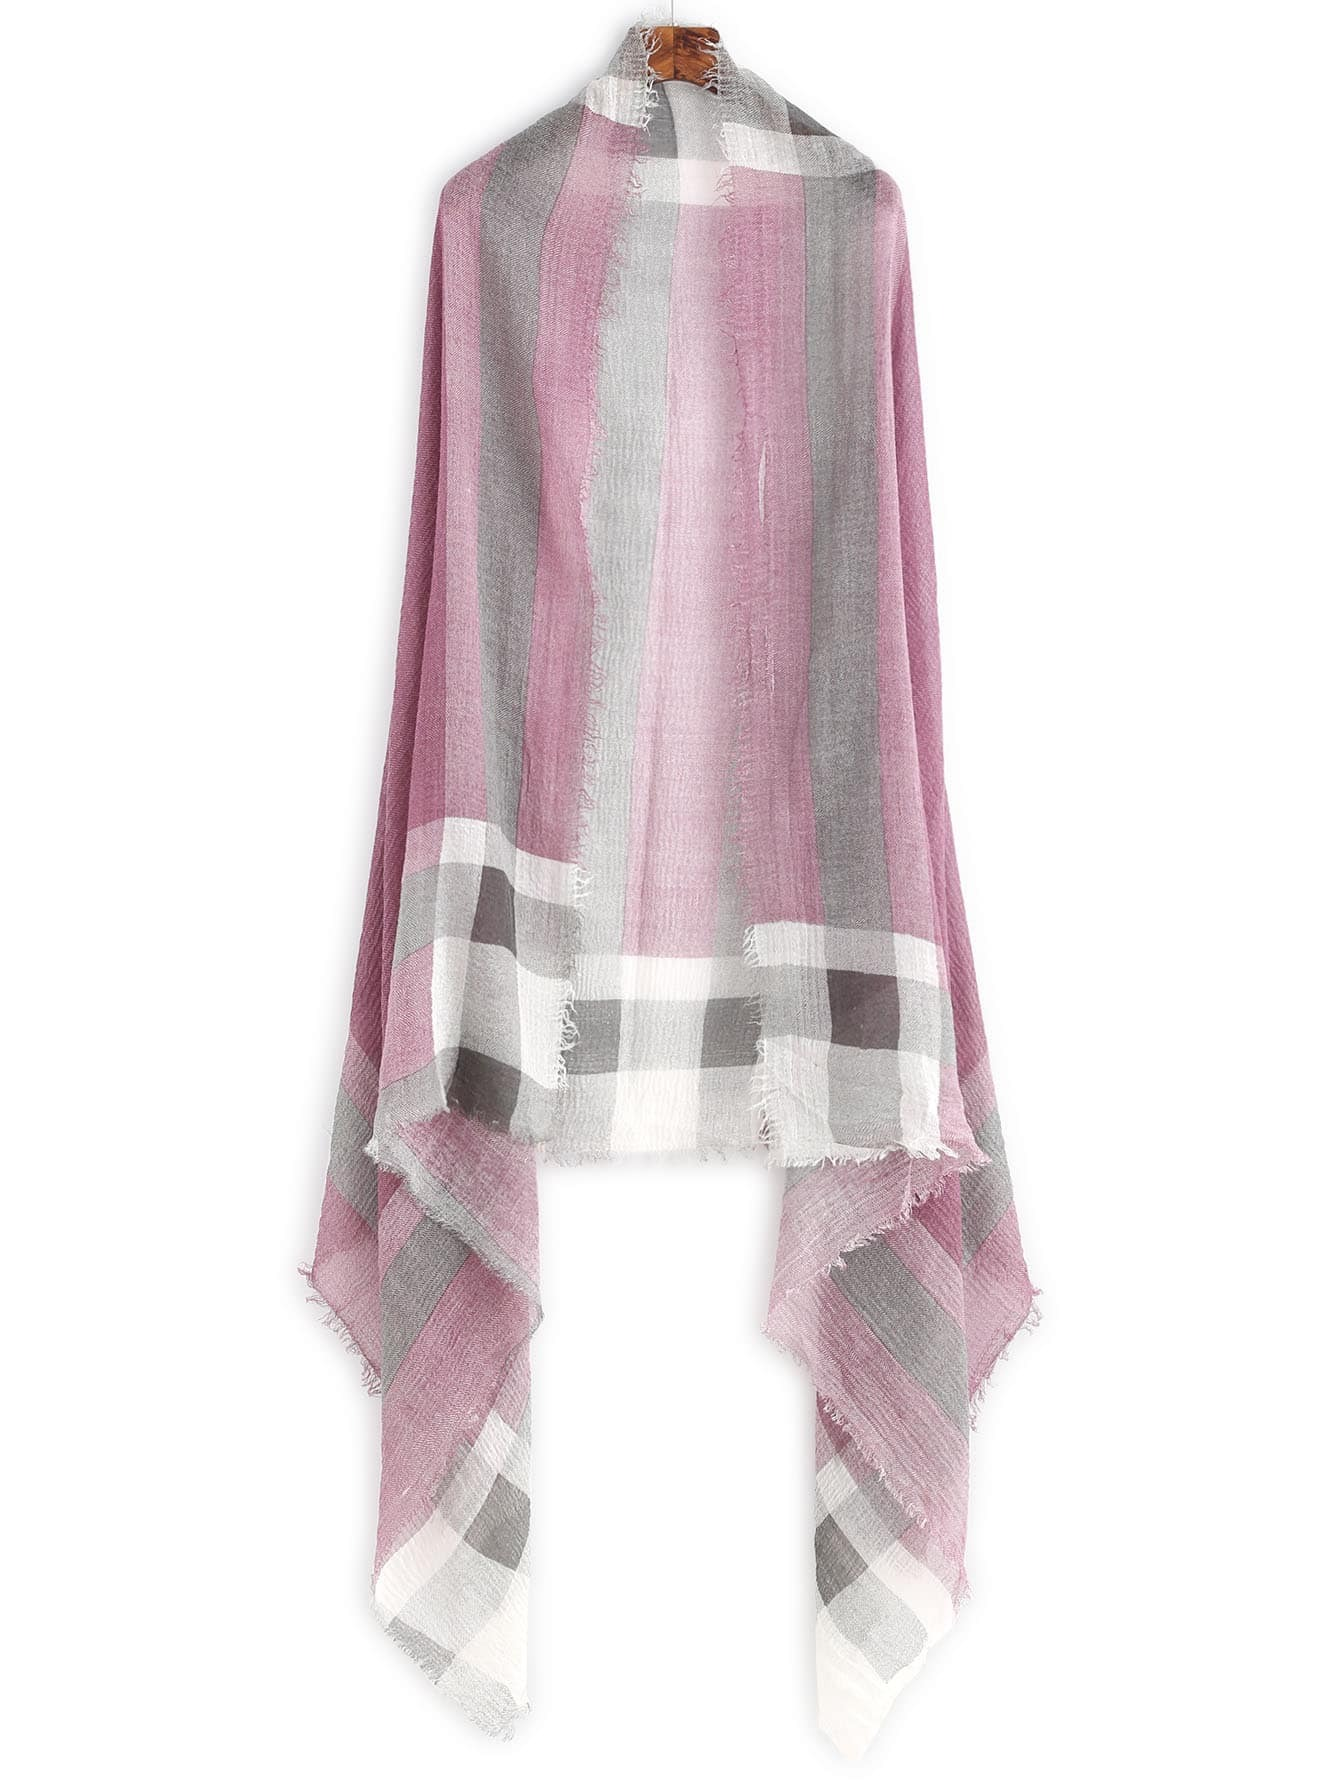 Purple Plaid Raw Edge Shawl Scarf scarf161103002